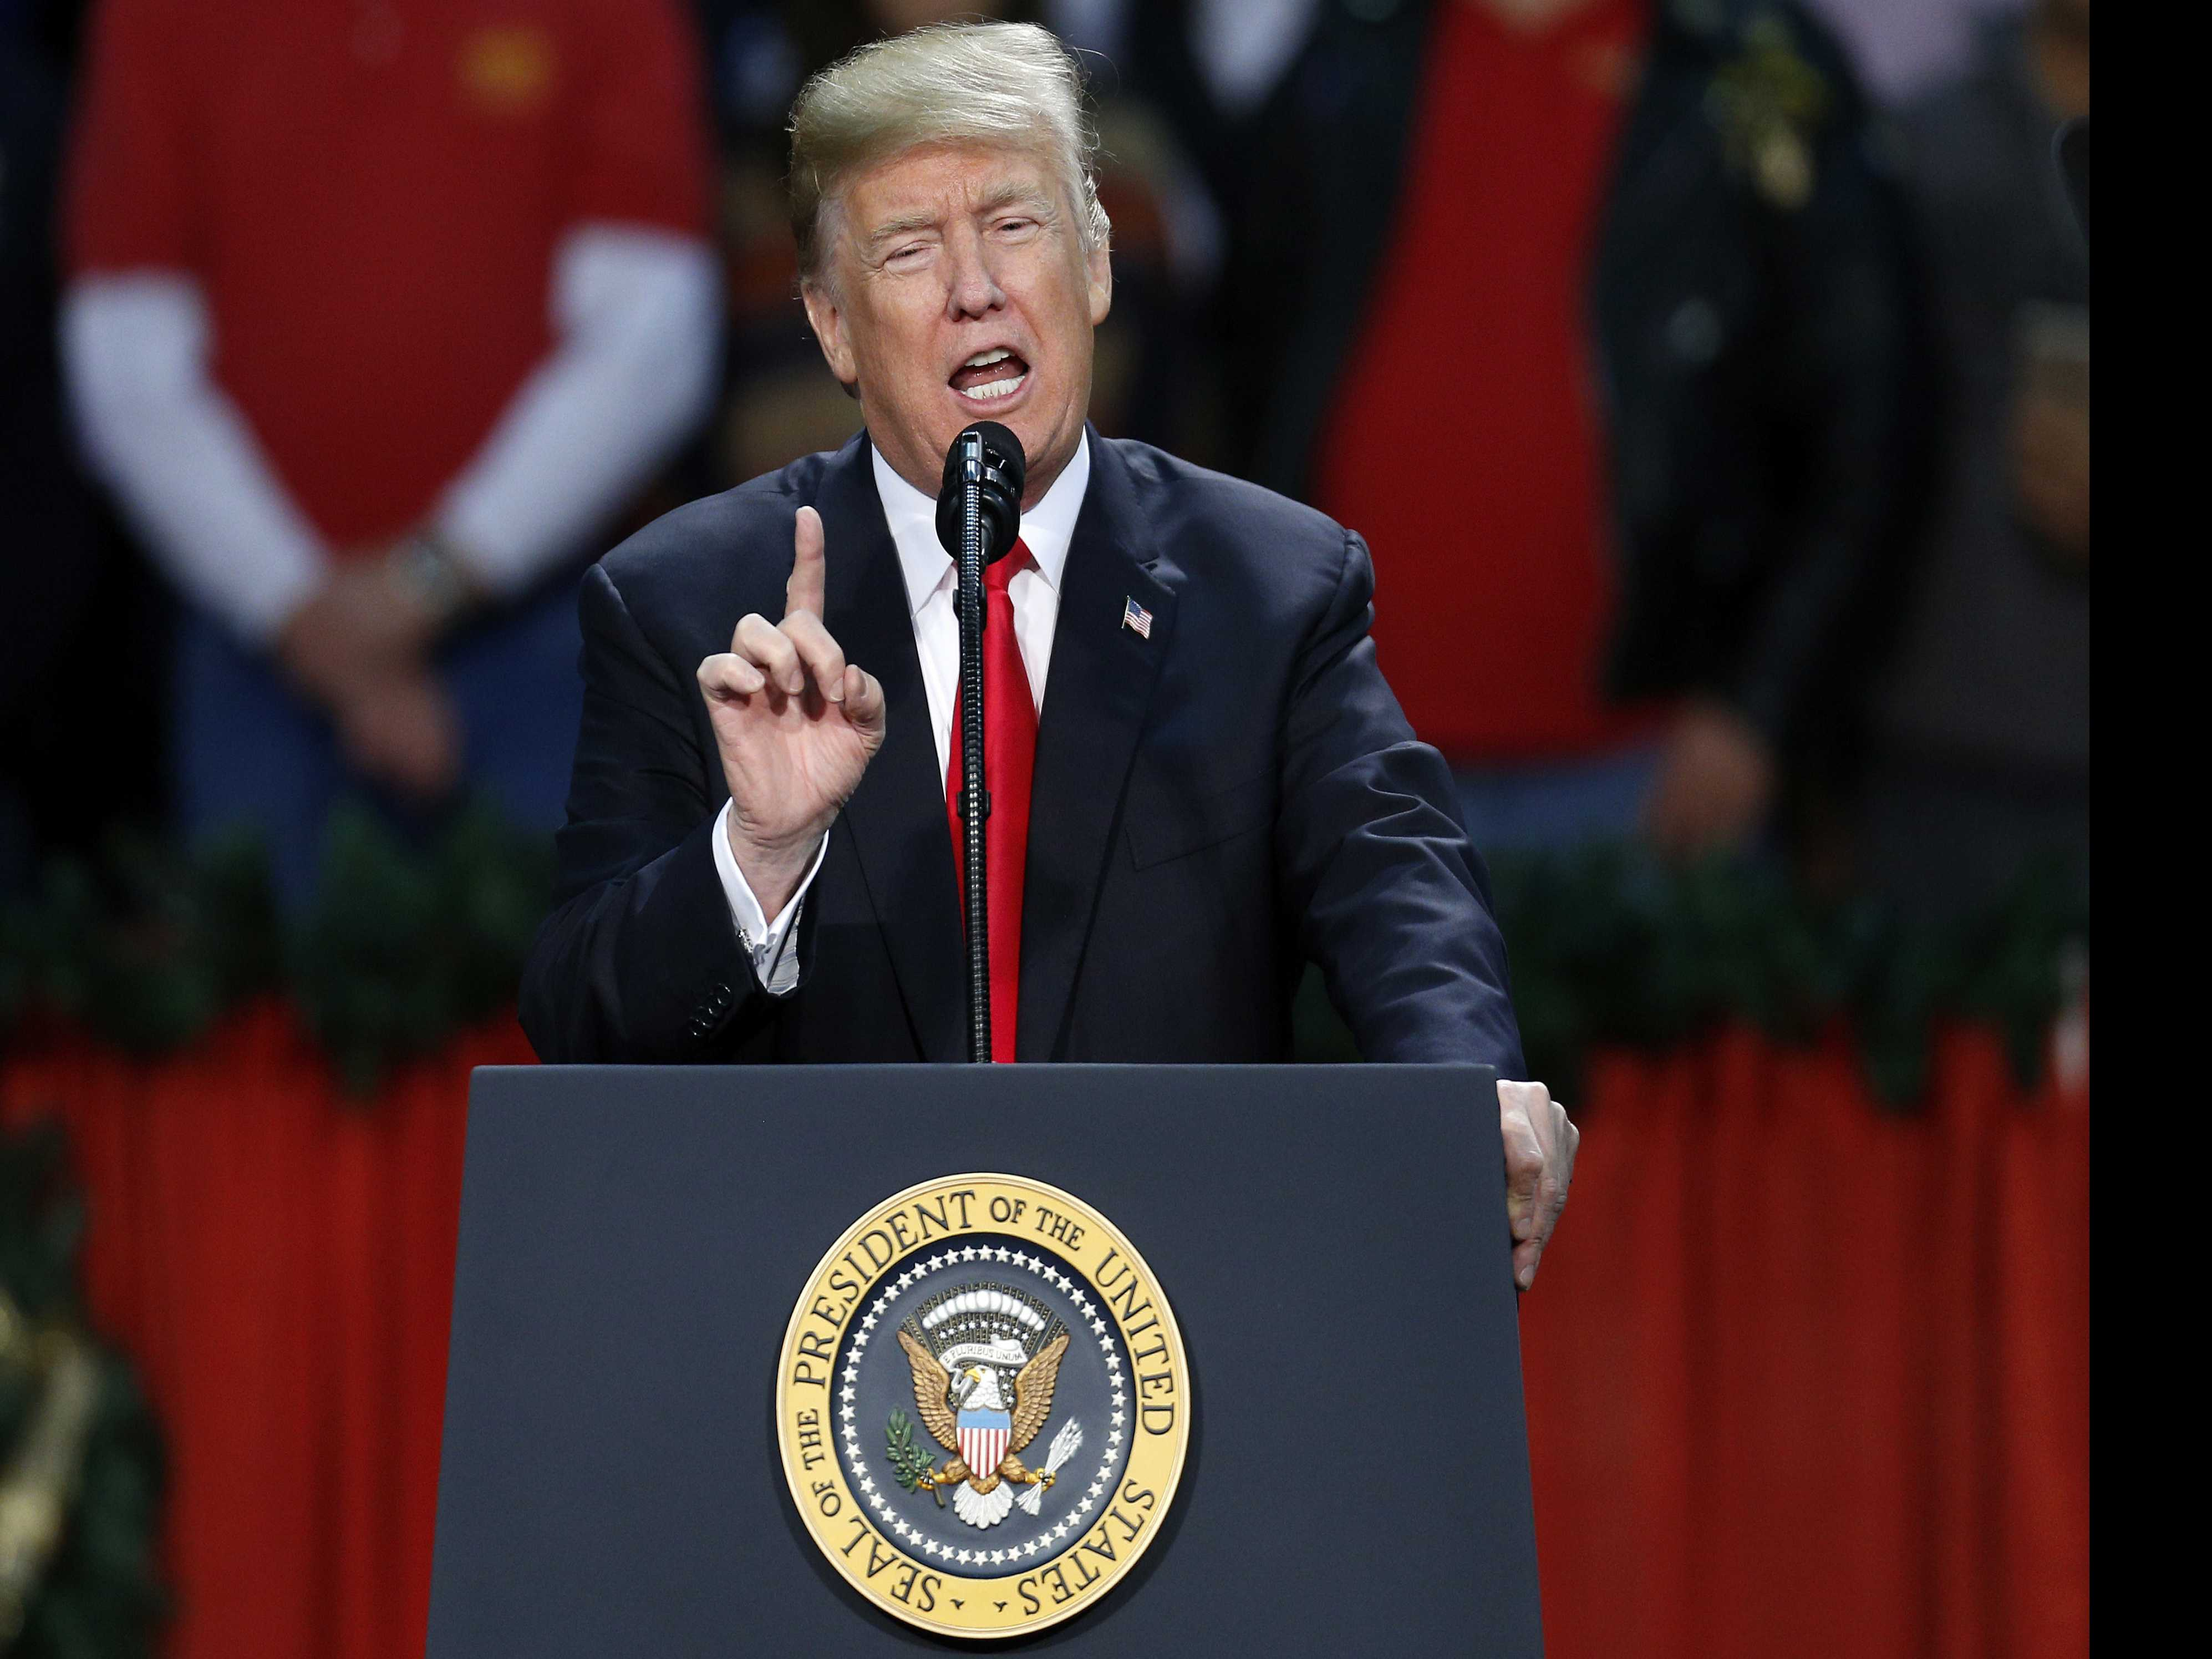 Trump Says US 'Cannot Afford' Roy Moore Loss in Alabama